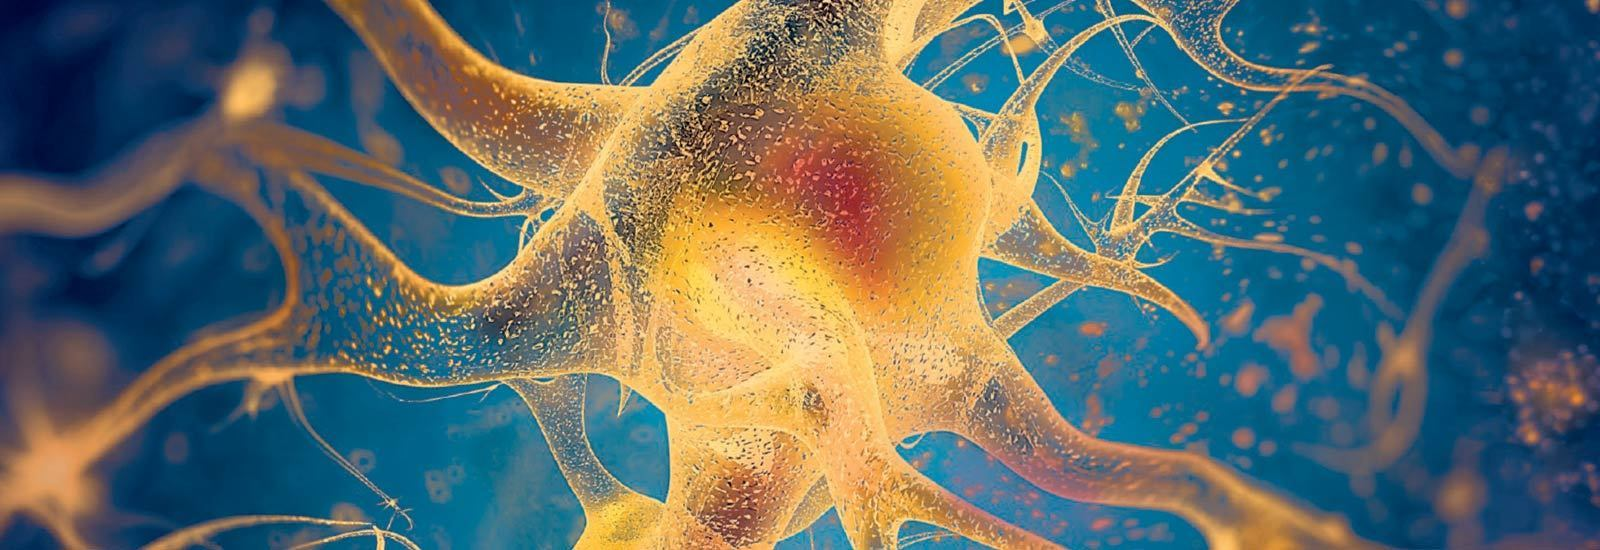 Assays for Neuronal Cell Health